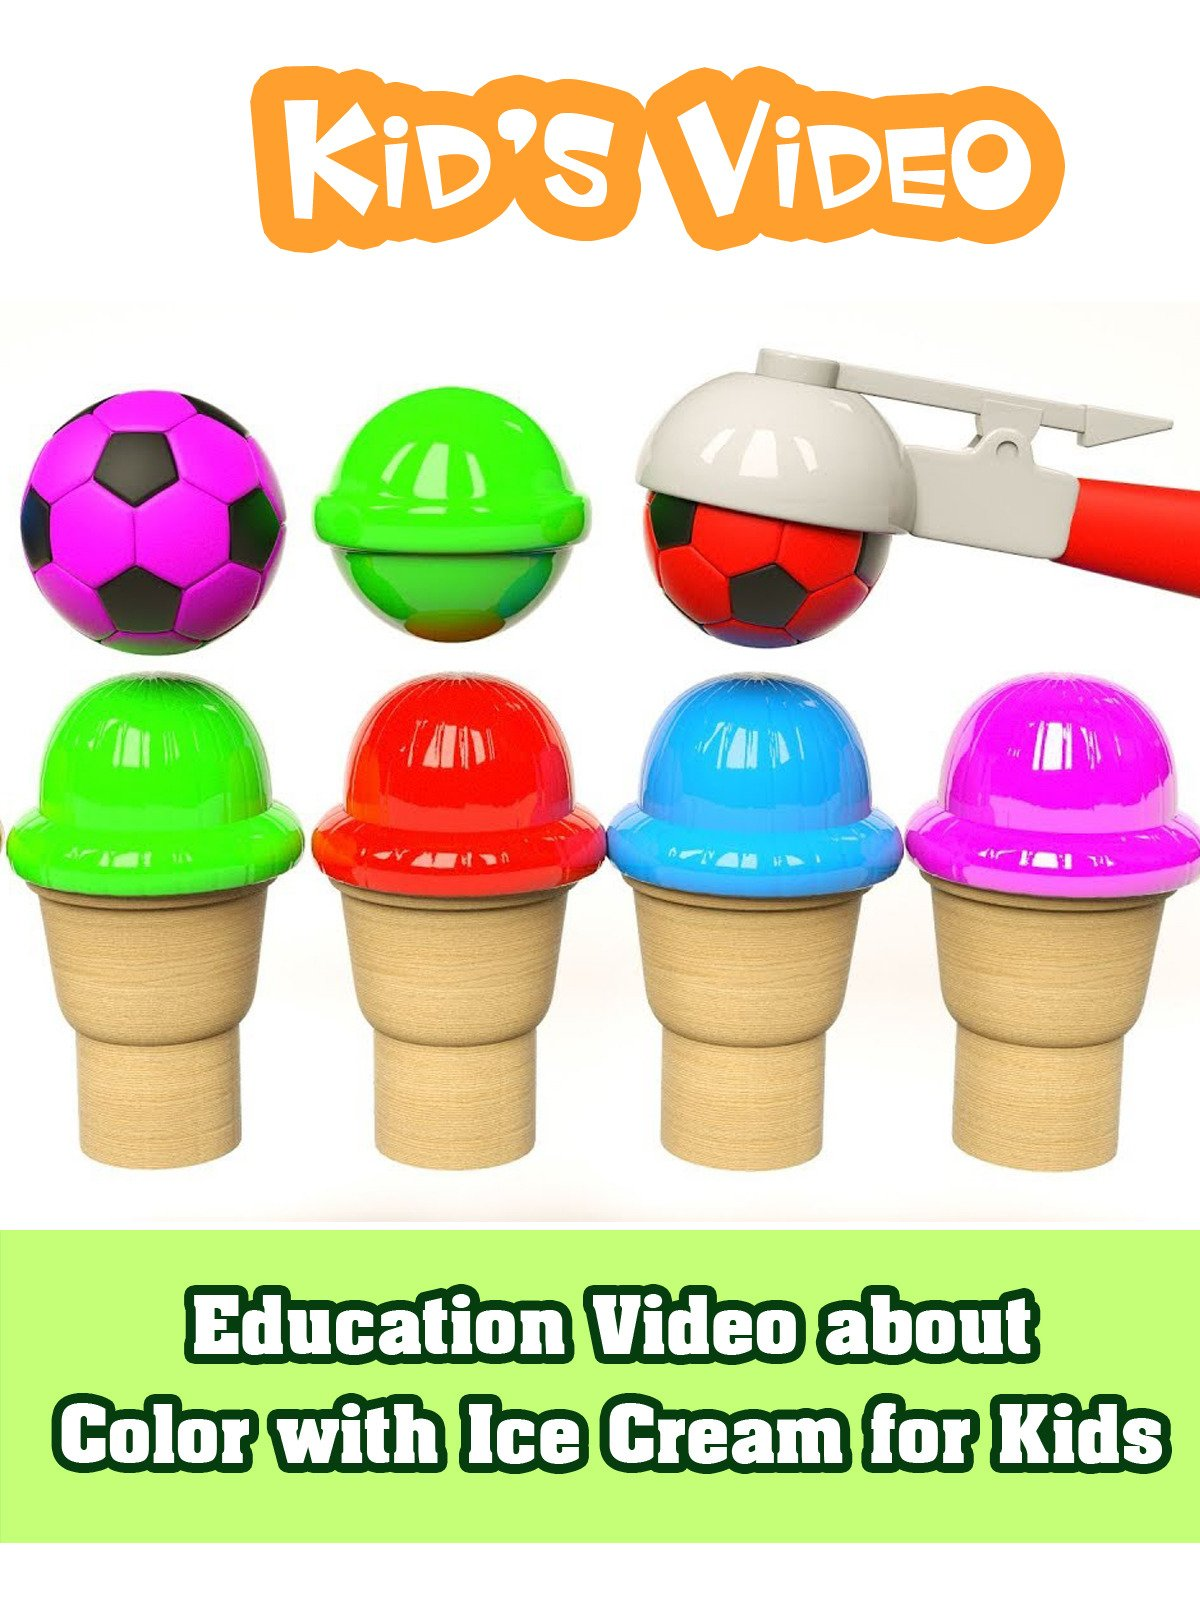 Education Video about Color with Ice Cream for Kids